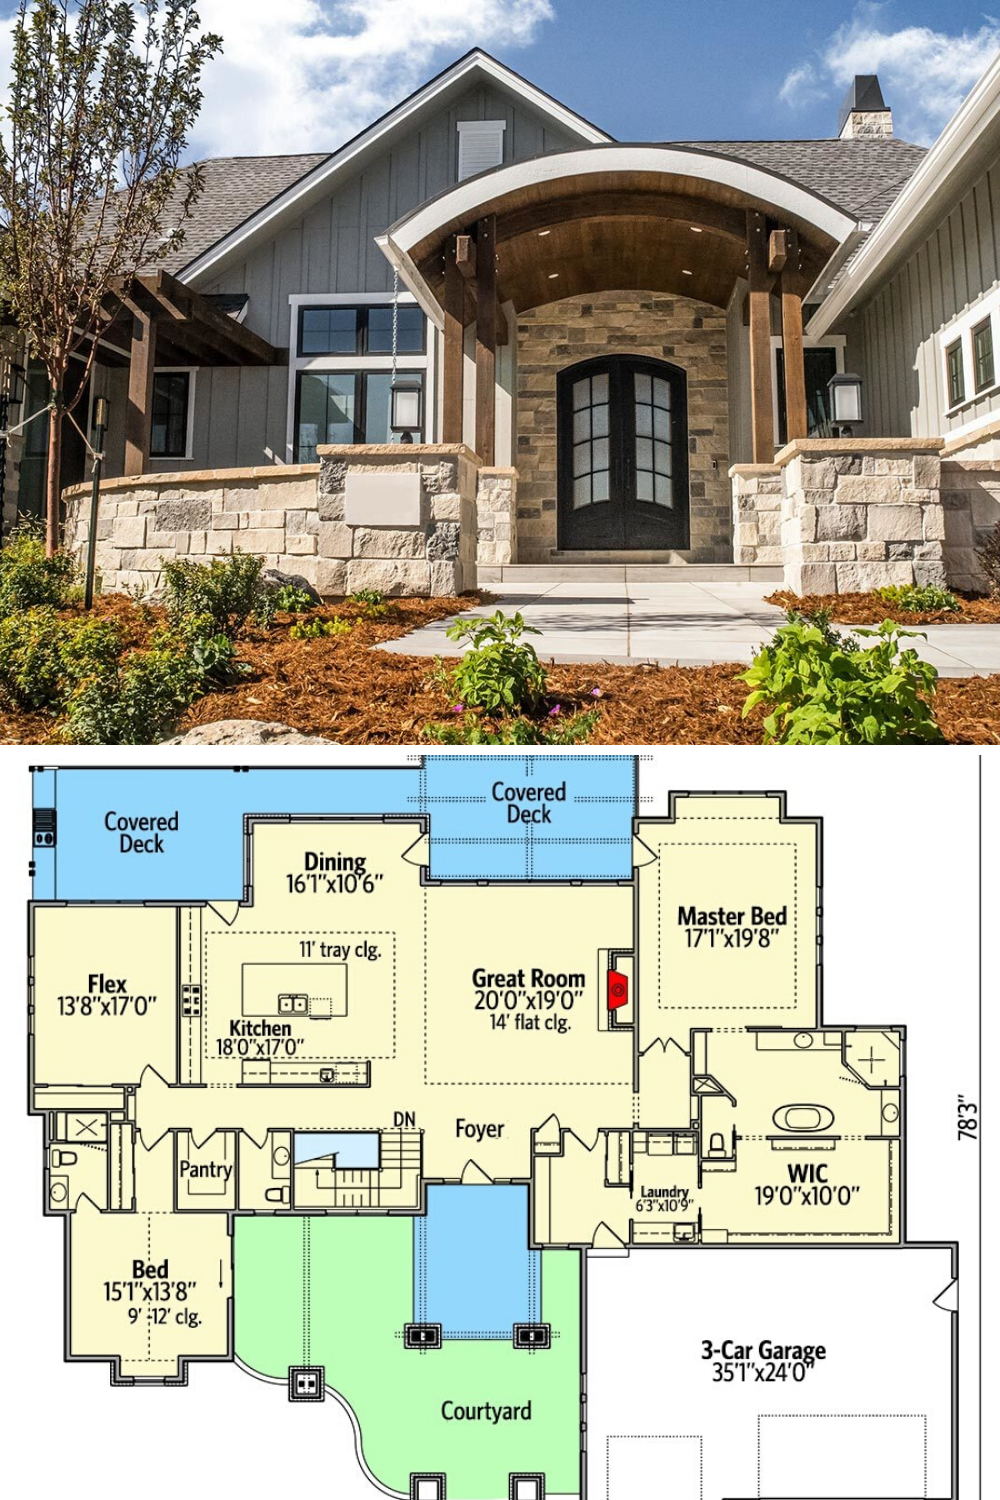 4 Bedroom Single Story New American Home With Large Rear Porch Floor Plan American Houses Craftsman House Plans Lake House Plans